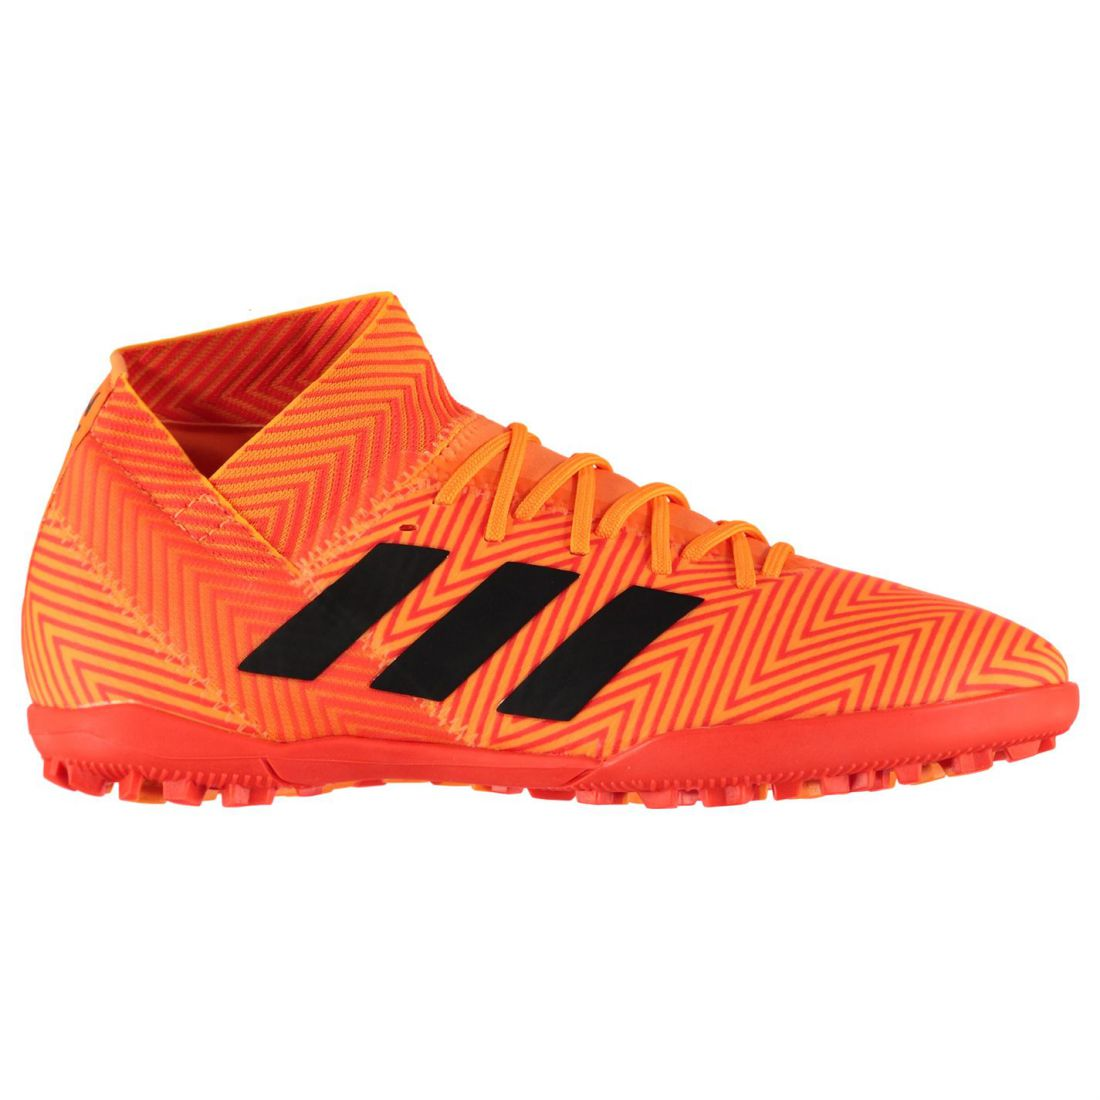 cbf8747c2 adidas Kids Boys Nemeziz 18.3 Junior Astro Turf Trainers Football ...